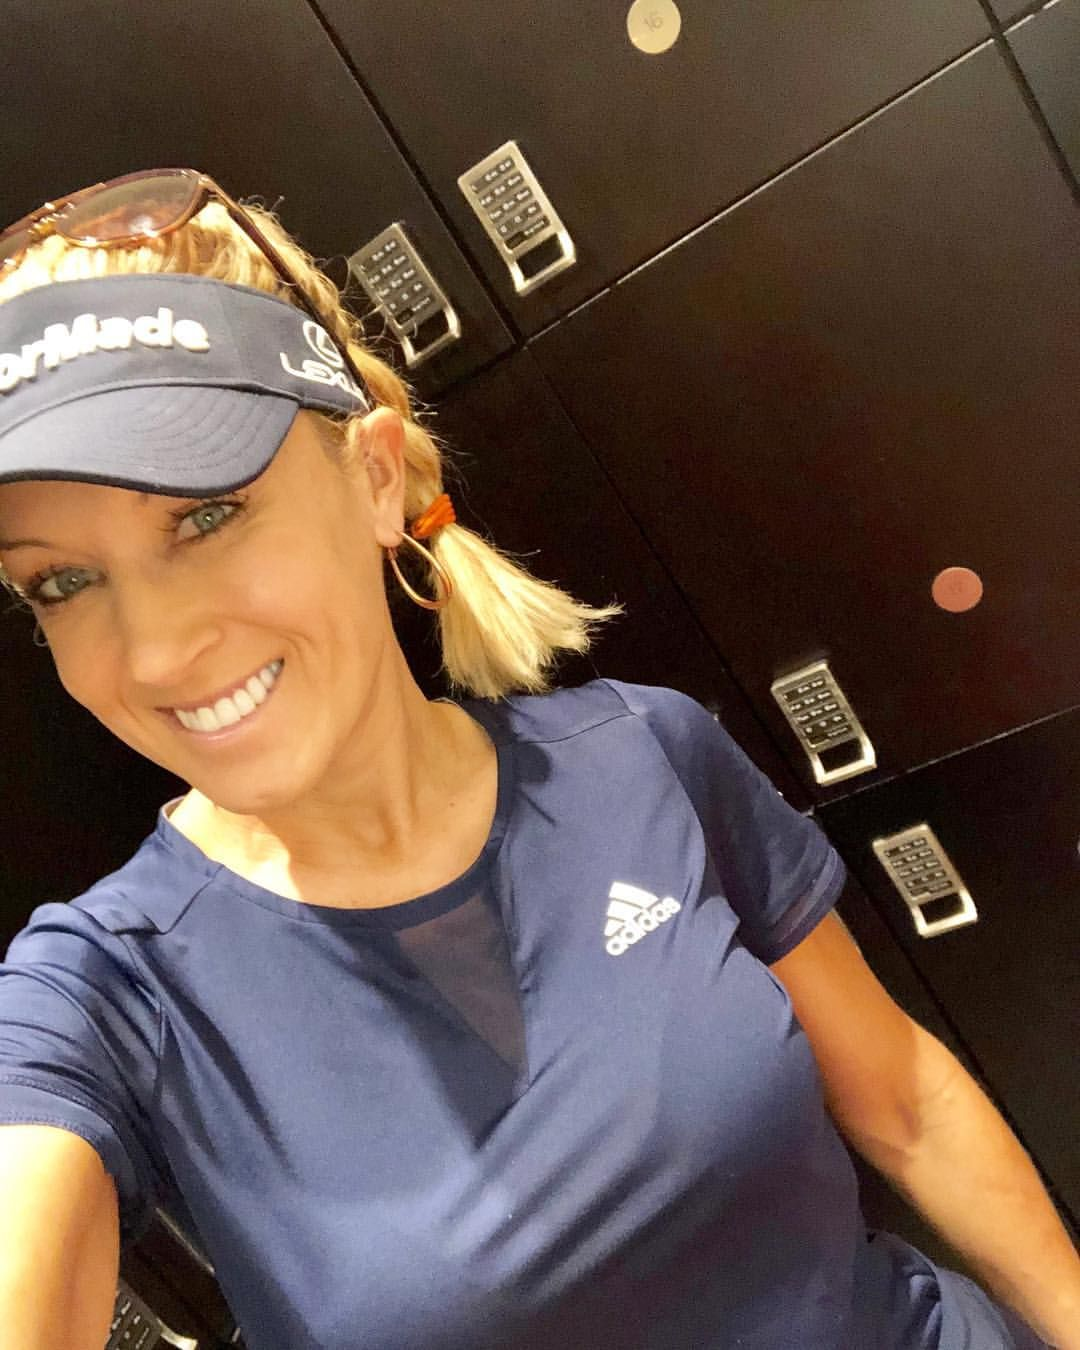 Pin by bill roberts on NATALIE GULBIS in 2019 Natalie